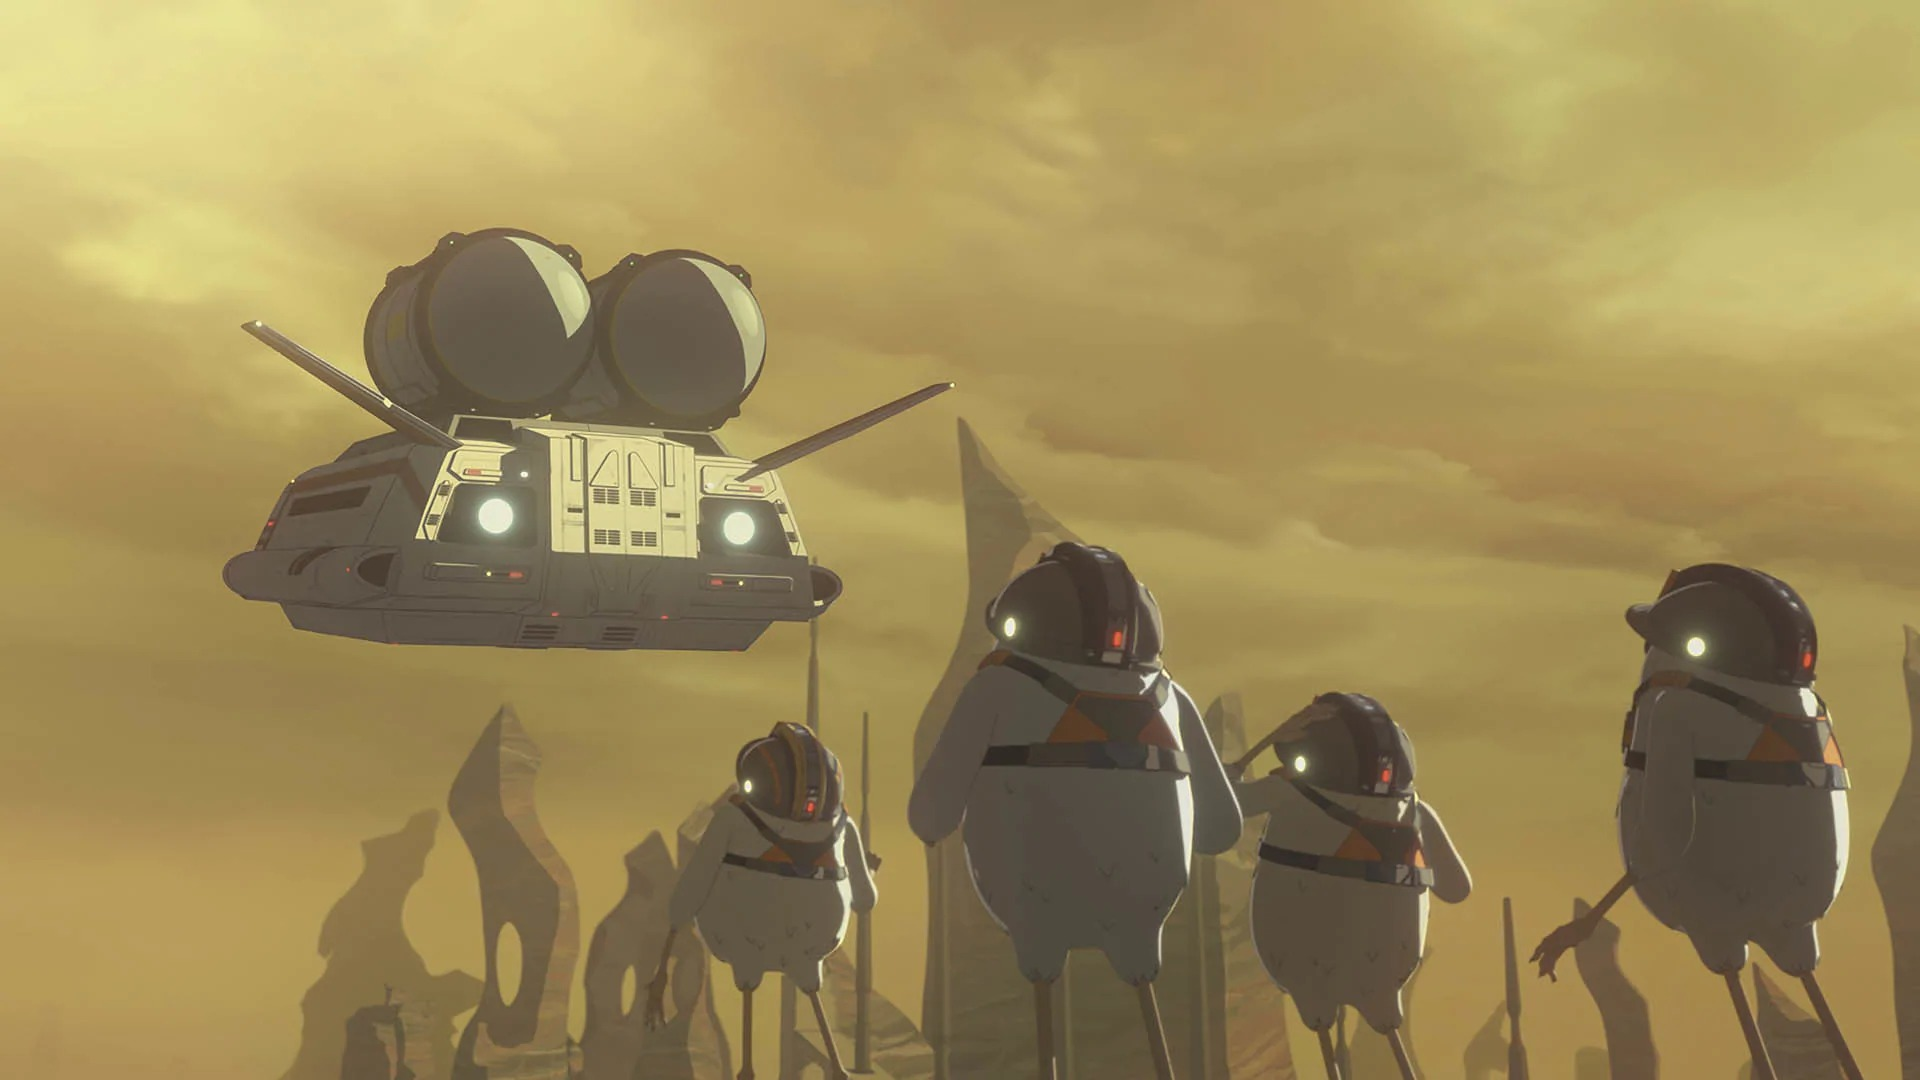 Star Wars Resistance From Beneath